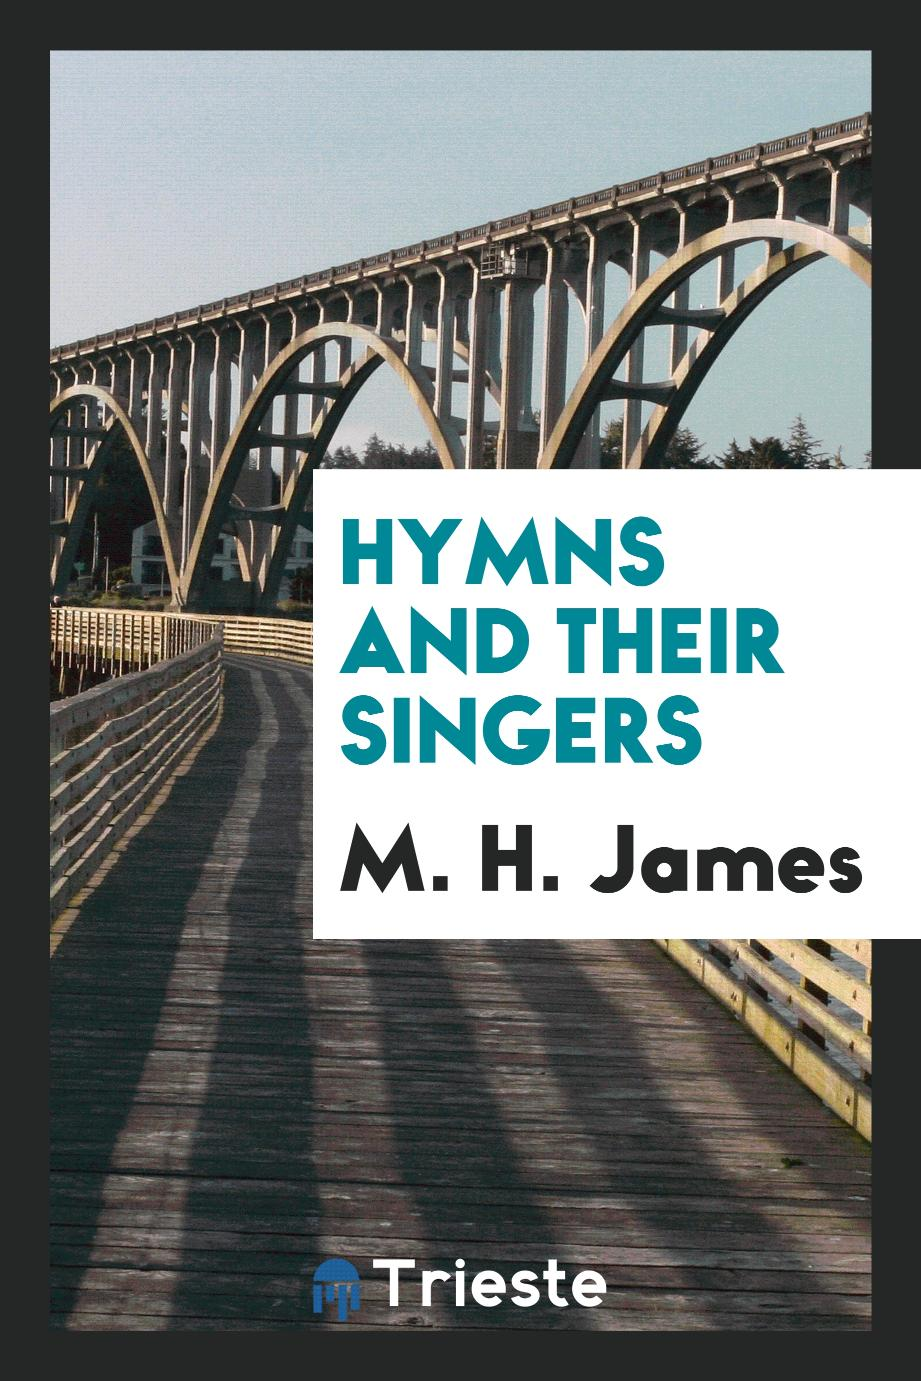 Hymns and their singers